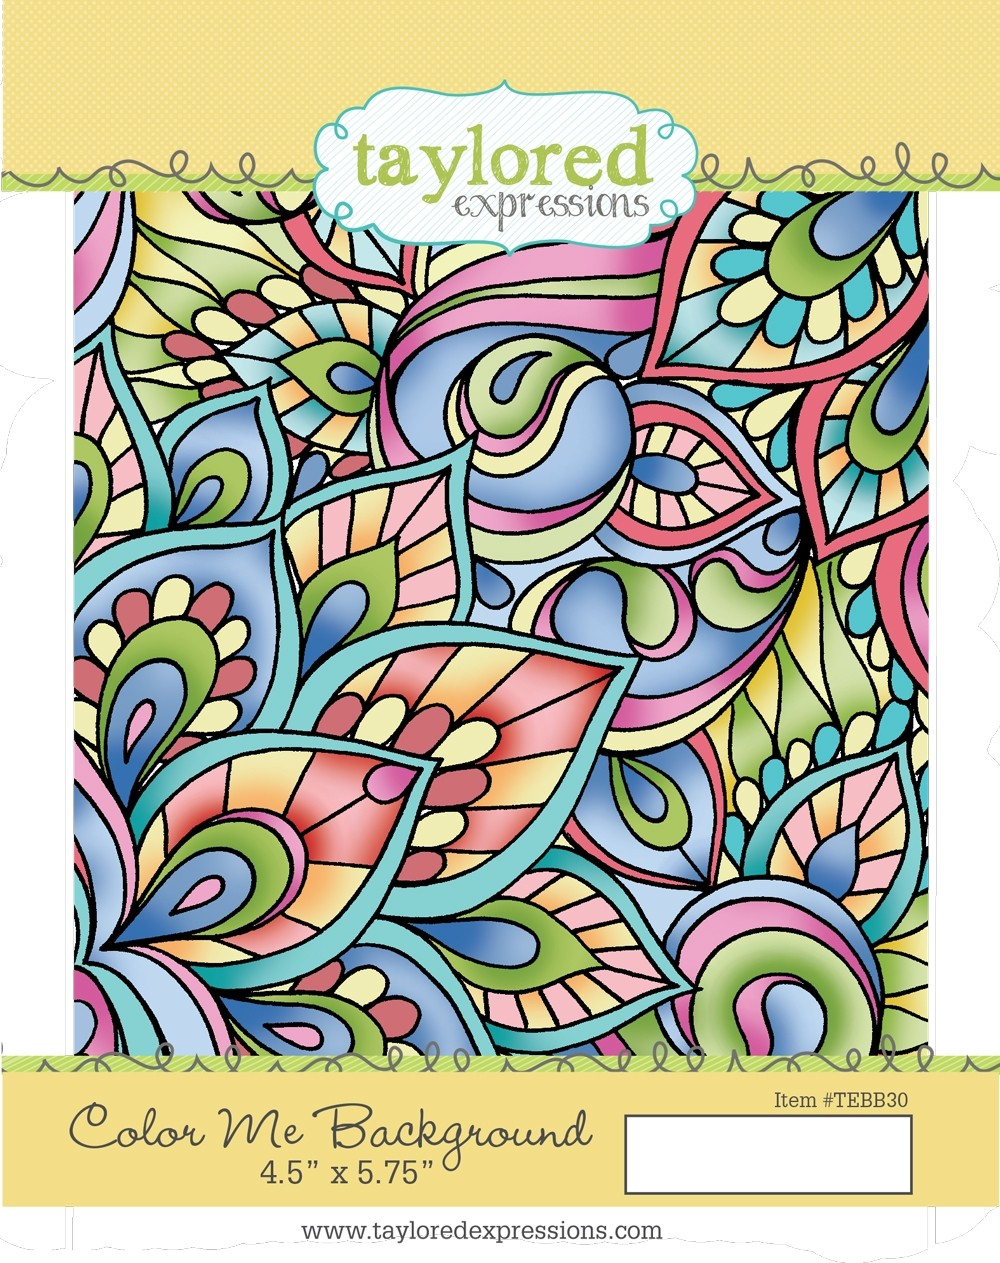 Taylored Expression - Color Me Background